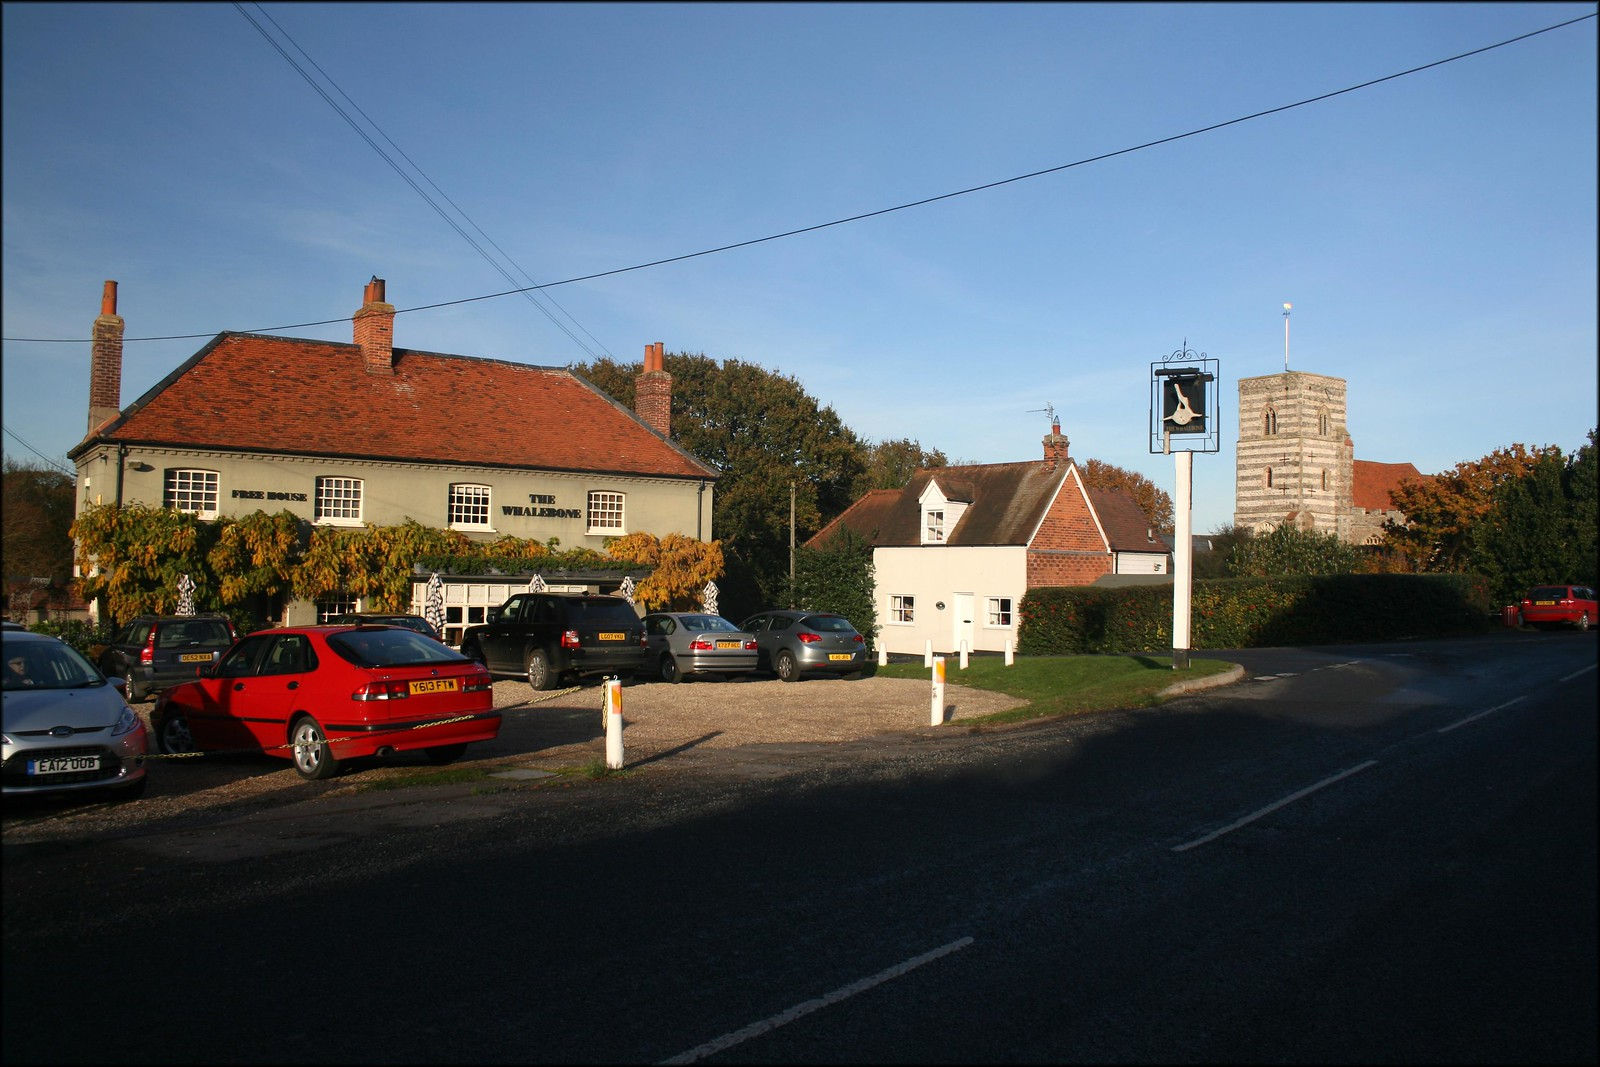 Fingringhoe village